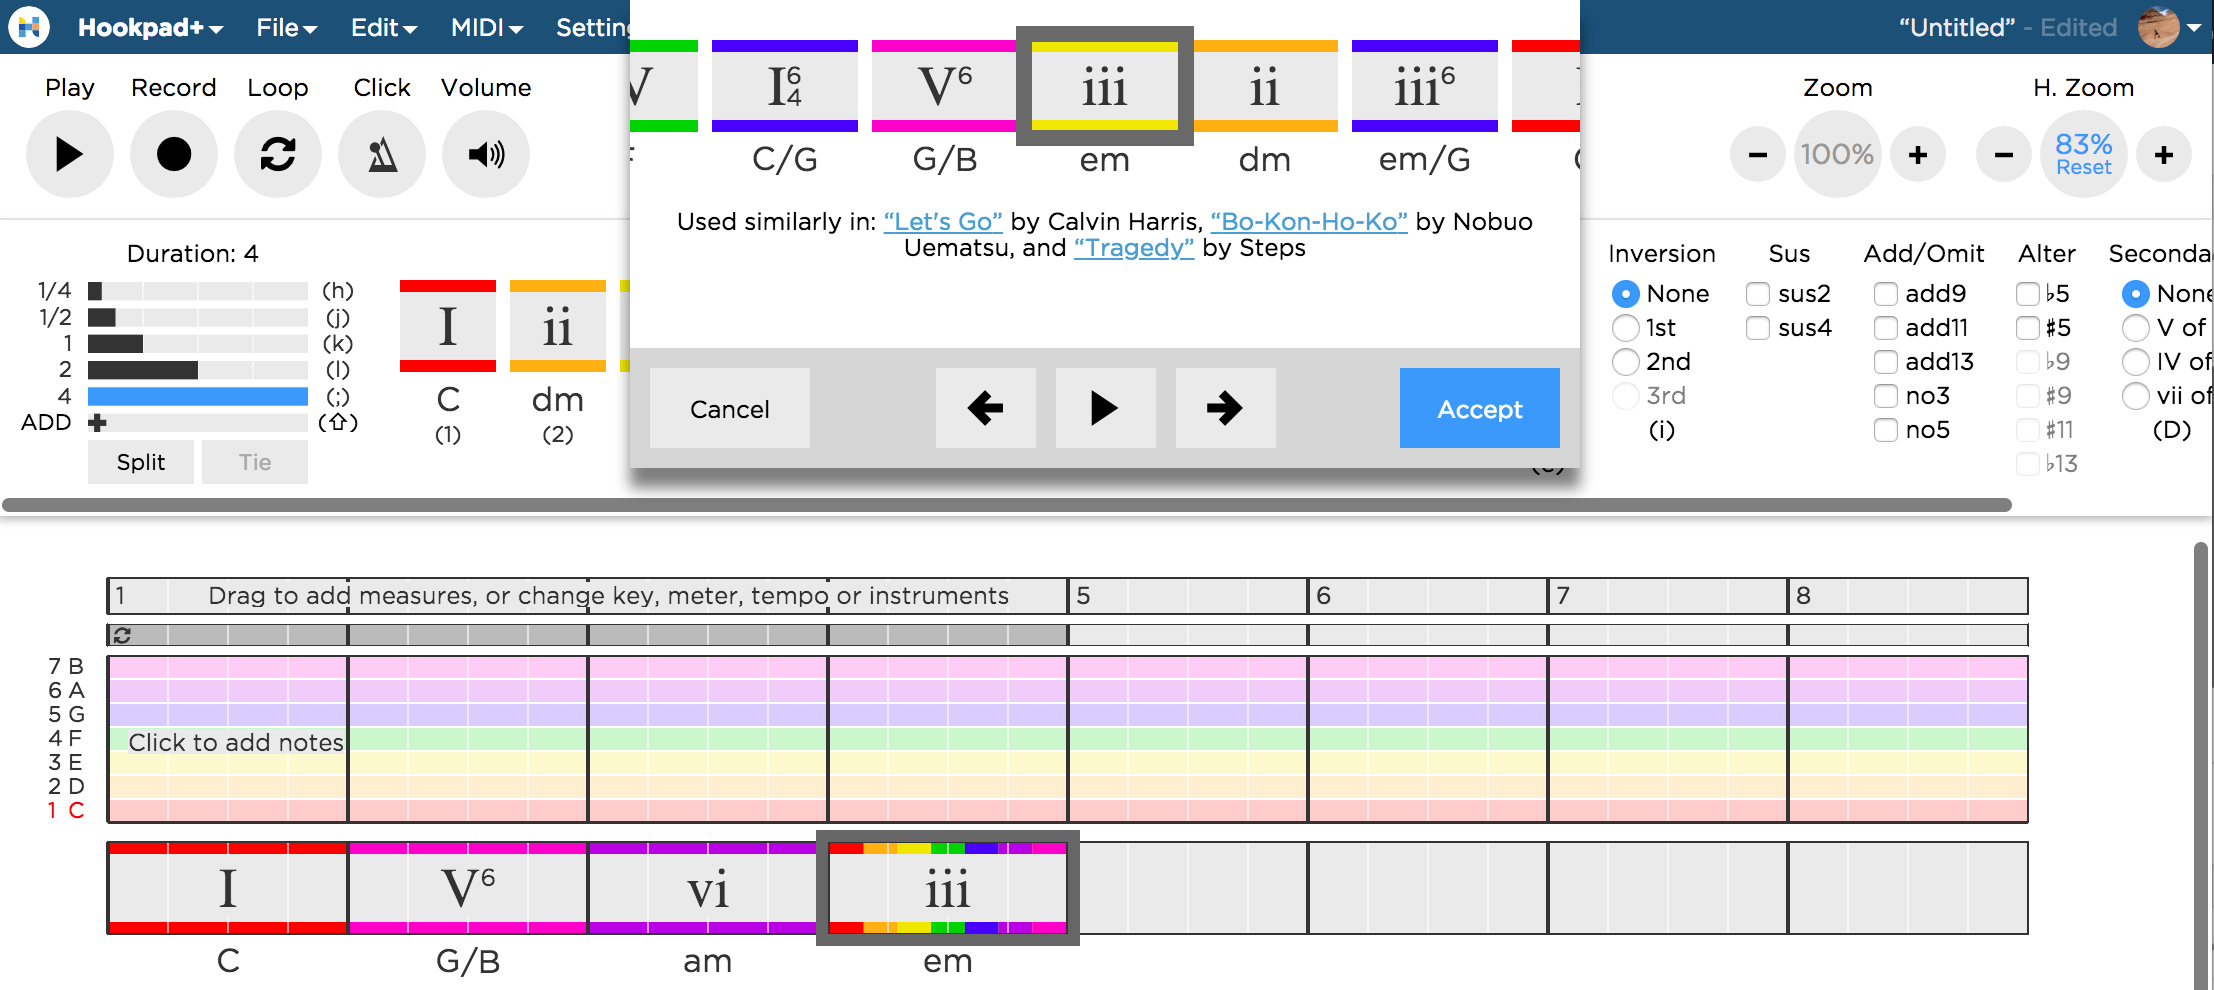 Hookpad's Magic Chord lets you ask Hookpad what it thinks is the best chord to use in a given situation.  Hookpad scans ><figcaption id=